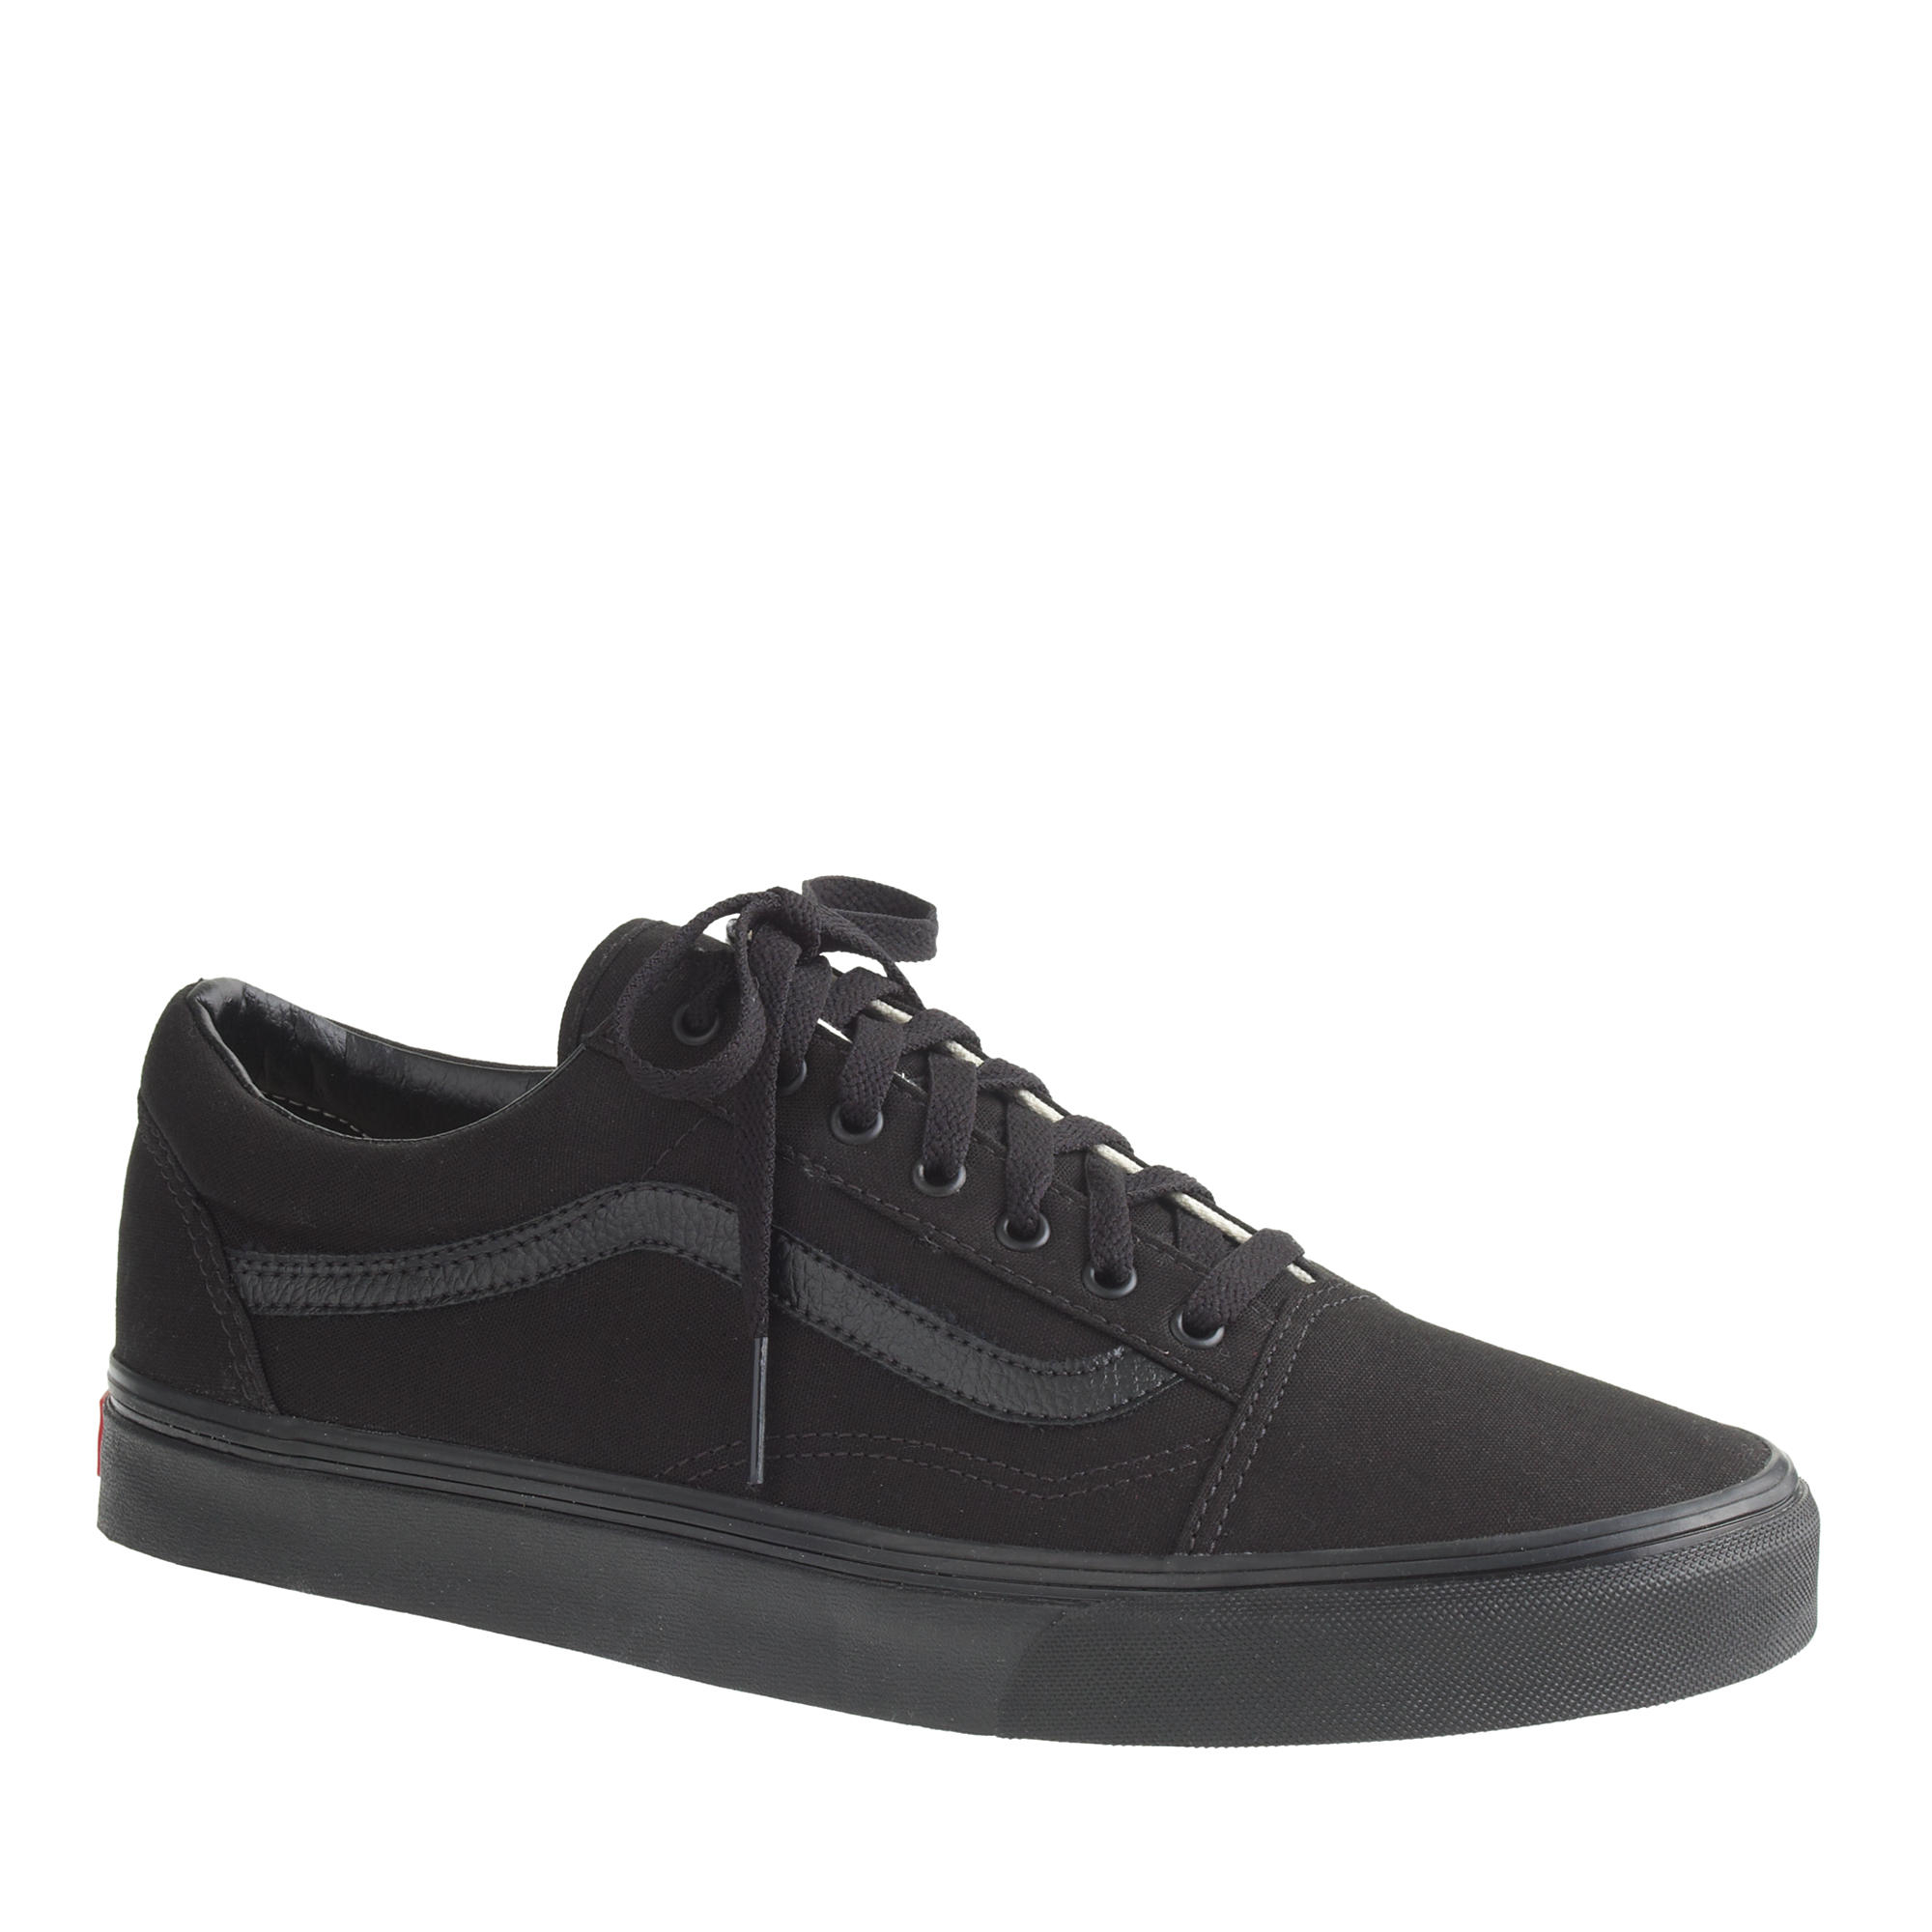 0b03bfd2aca0 Lyst - J.Crew Men S Vans® Old Skool Sneakers In Black in Black for Men